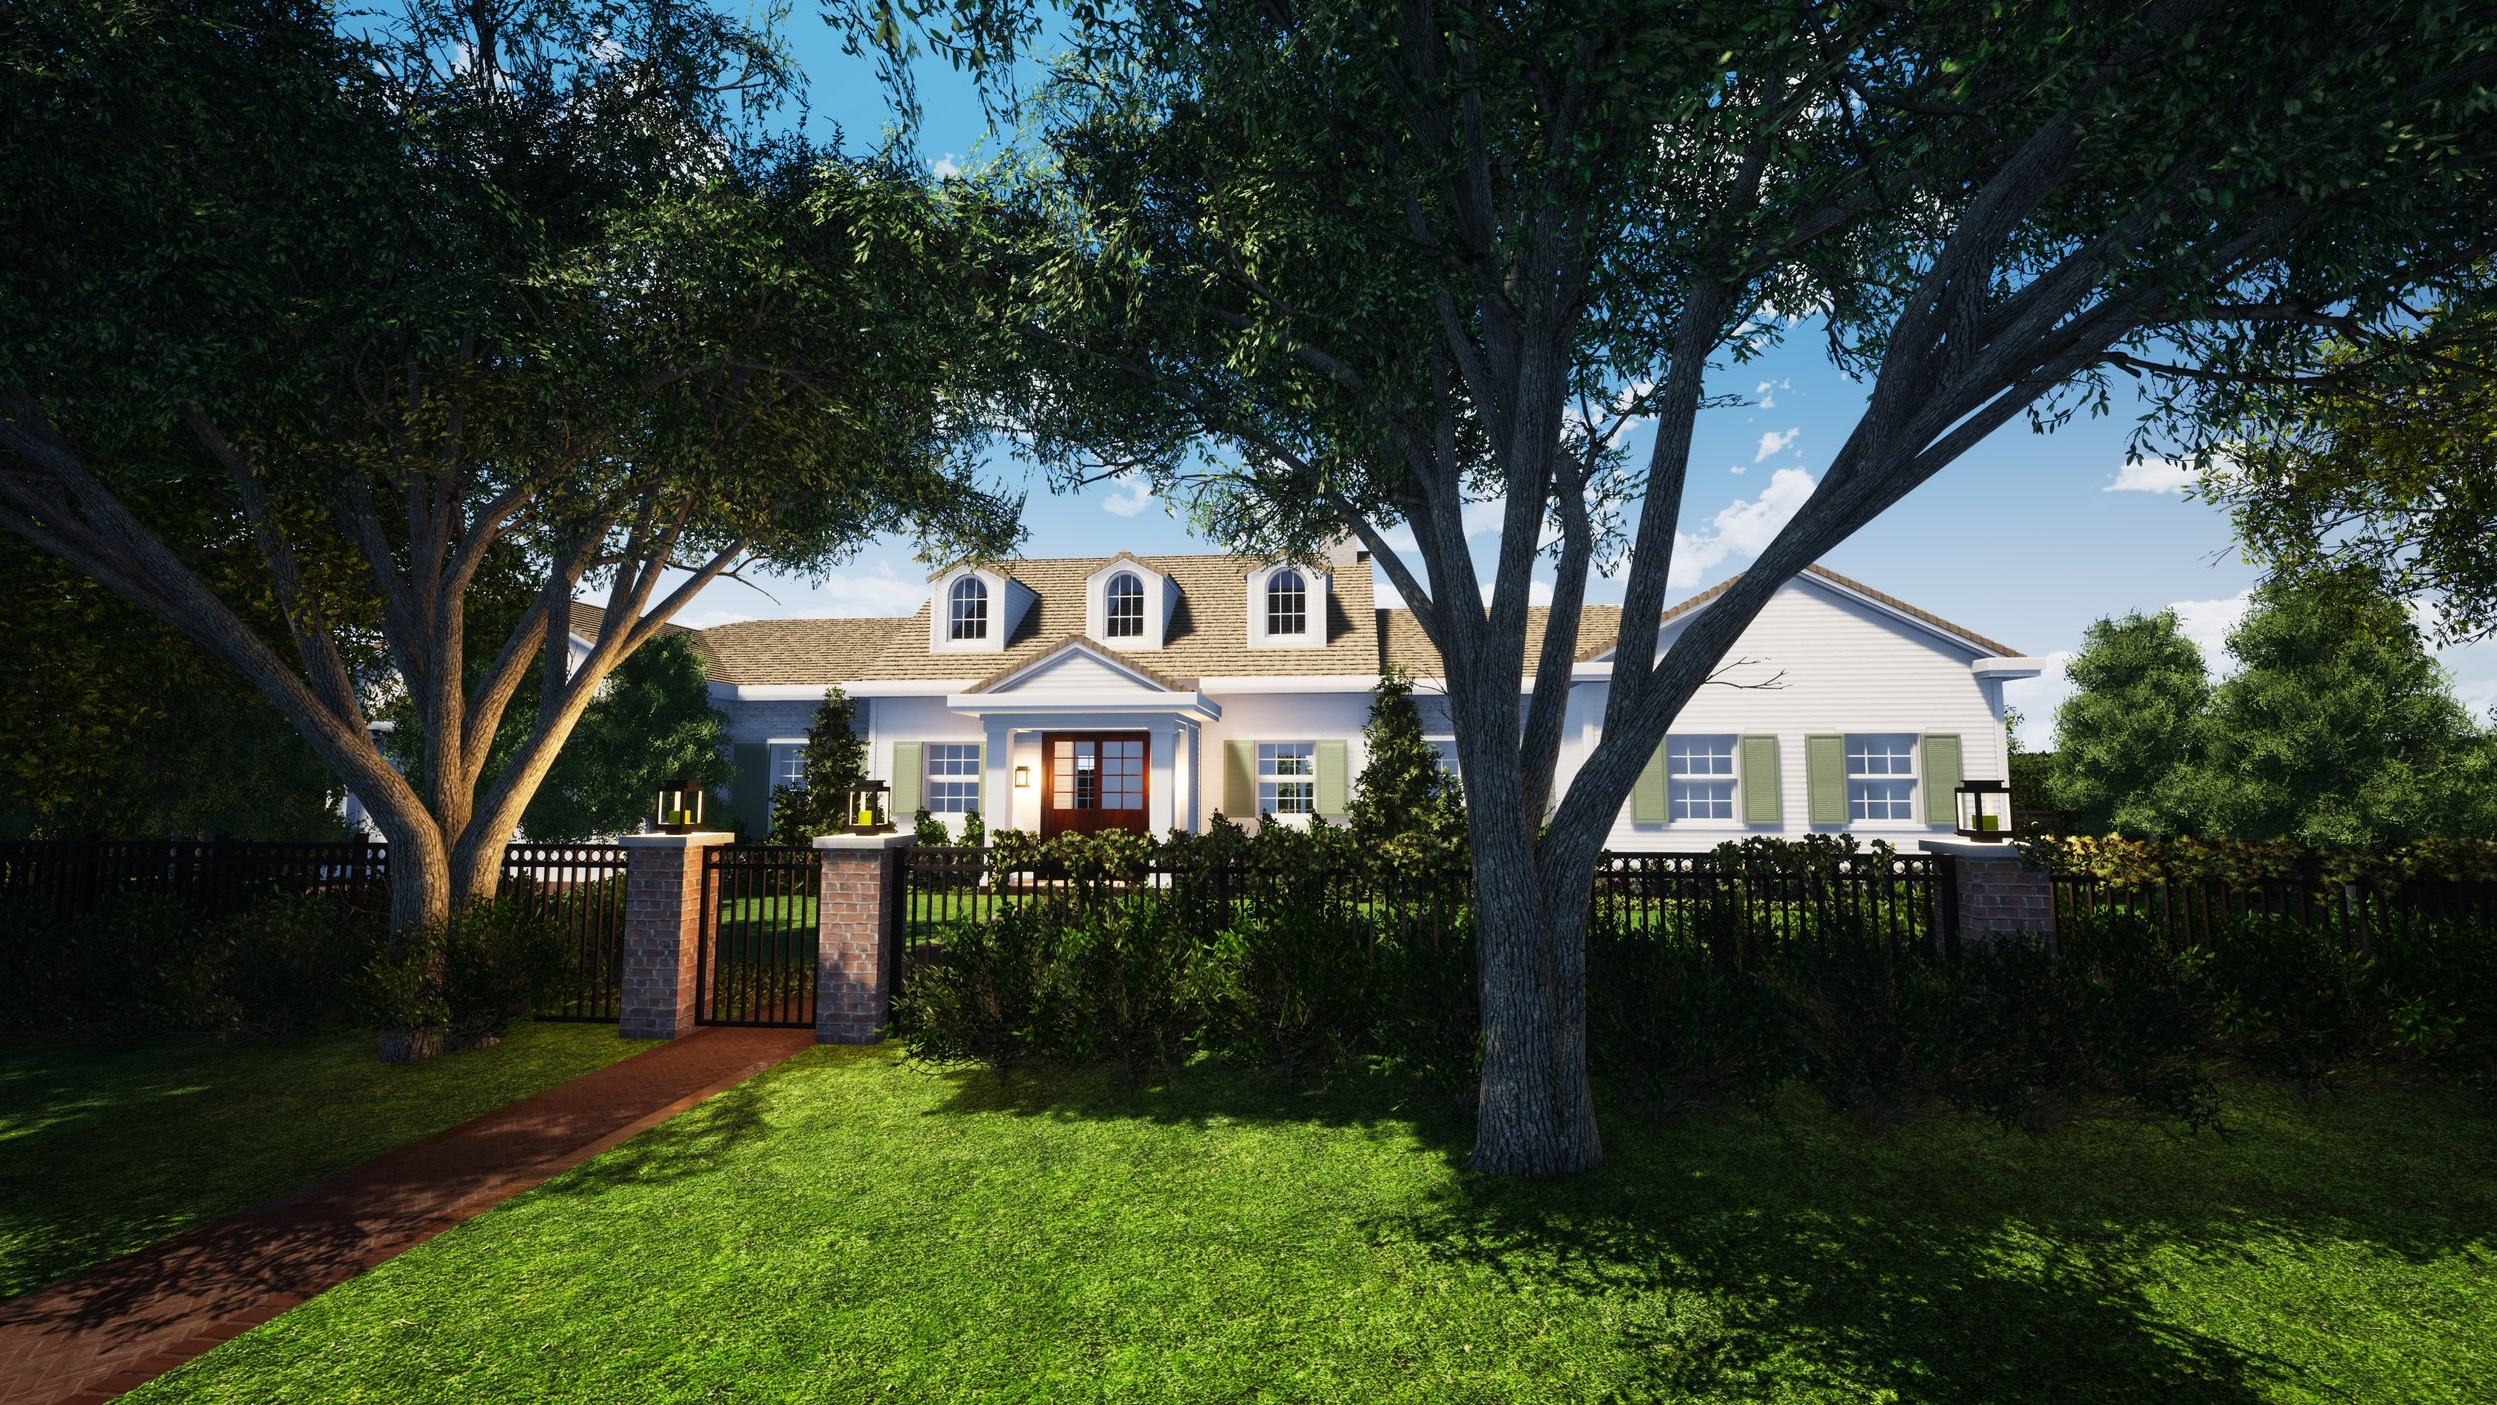 SOUTH MIAMI RESIDENCE - CLICK HERE FOR MORE INFORMATION